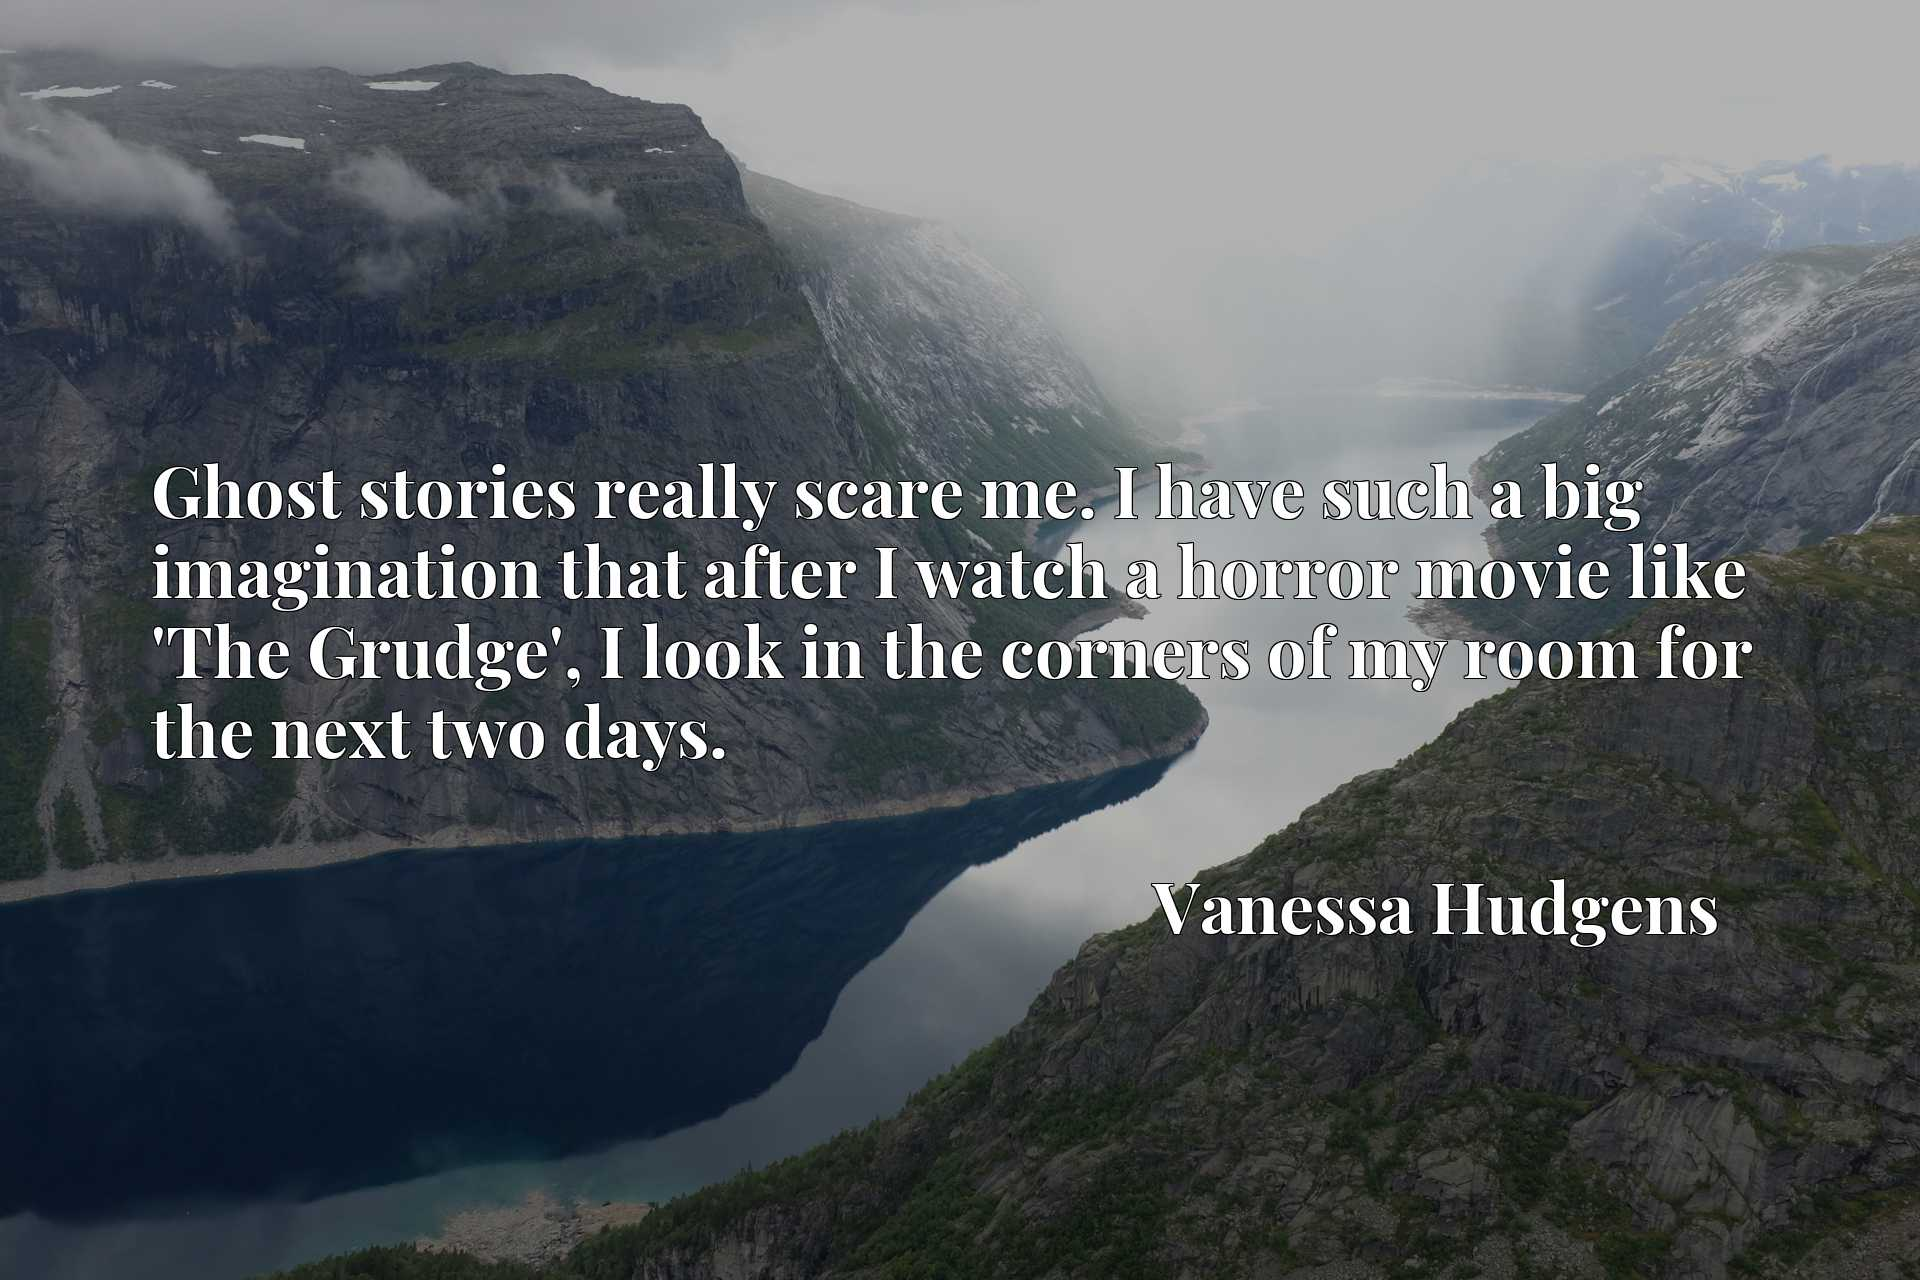 Quote Picture :Ghost stories really scare me. I have such a big imagination that after I watch a horror movie like 'The Grudge', I look in the corners of my room for the next two days.